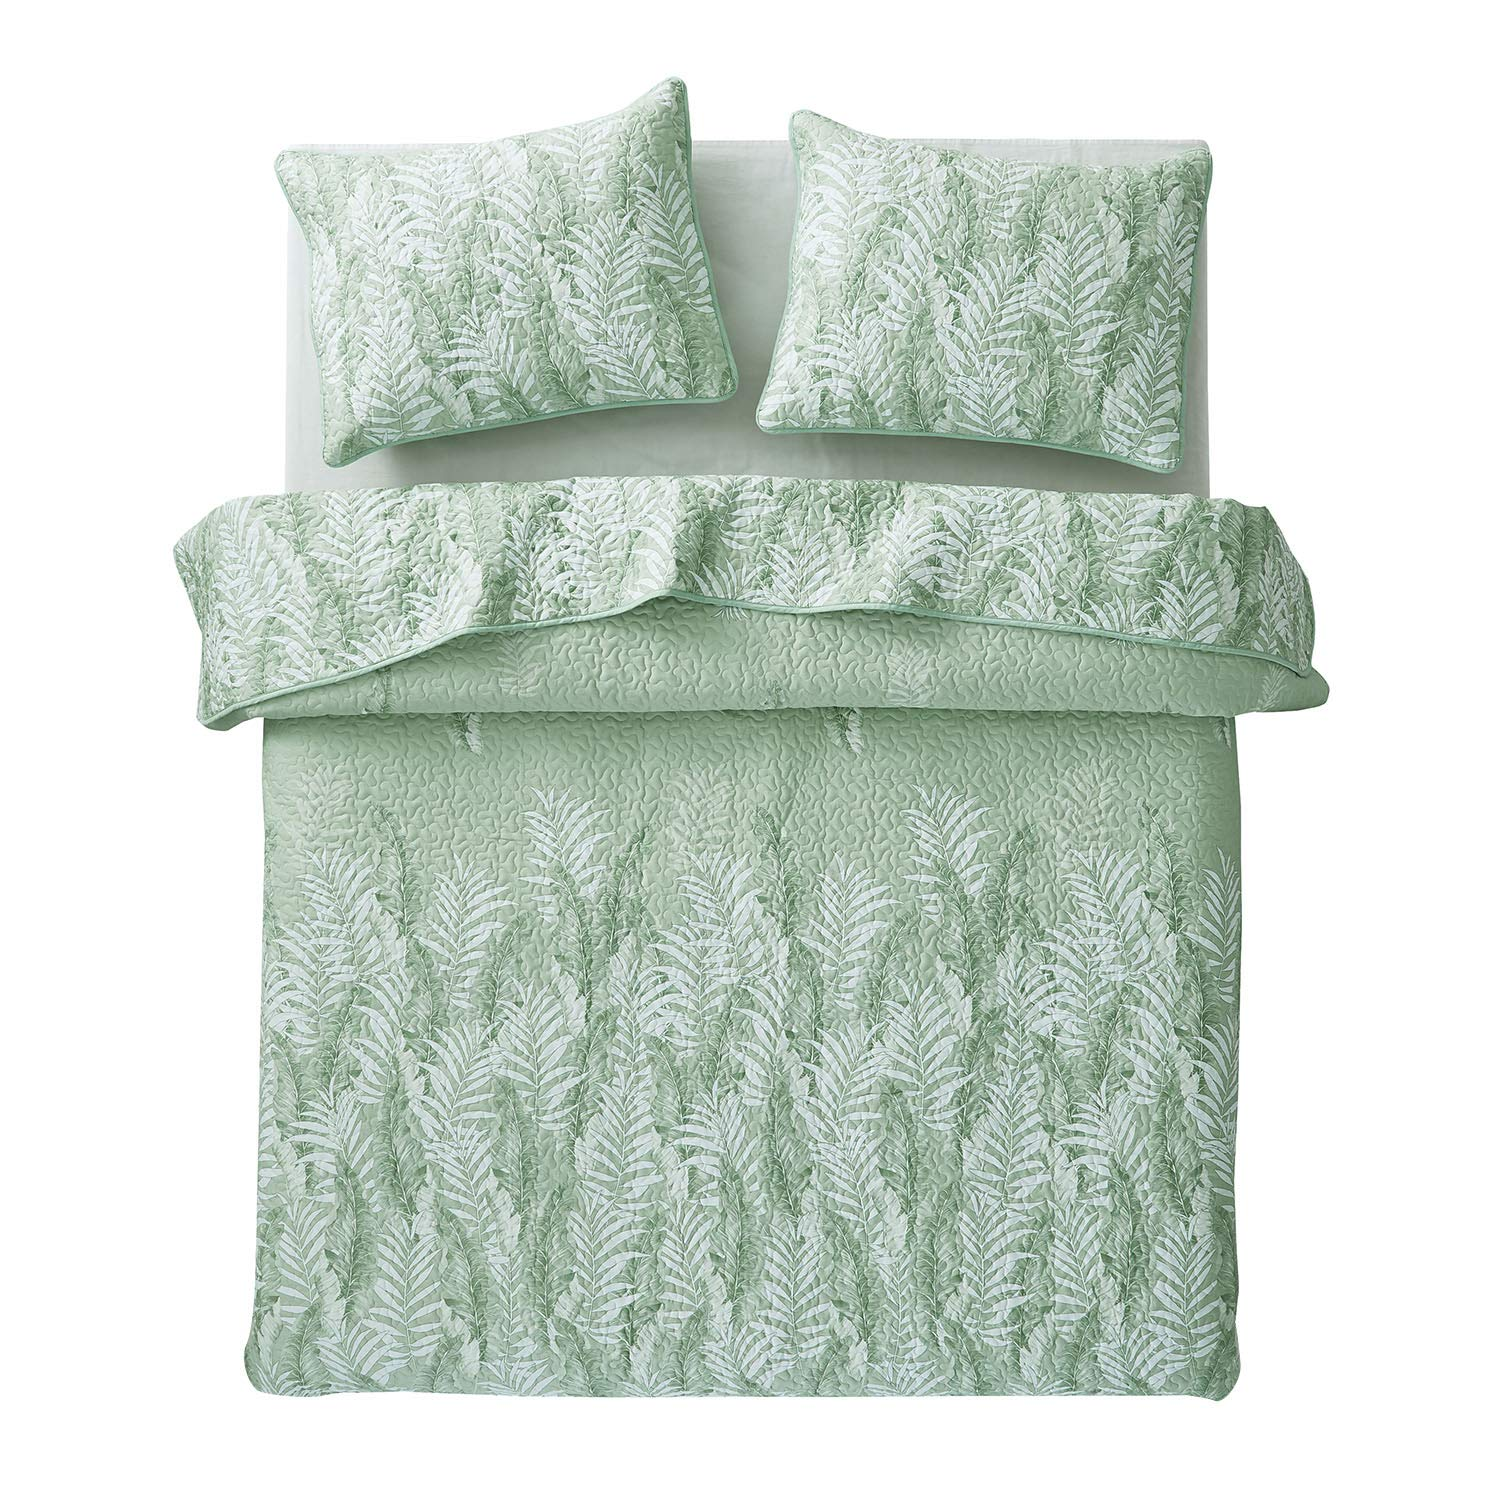 Wake In Cloud - Leaves Quilt Set, Tropical Palm Tree Banana Tree Leaf Pattern Printed in Green White, 100% Cotton Fabric with Soft Microfiber Inner Fill Bedspread Coverlet Bedding (3pcs, Queen Size)